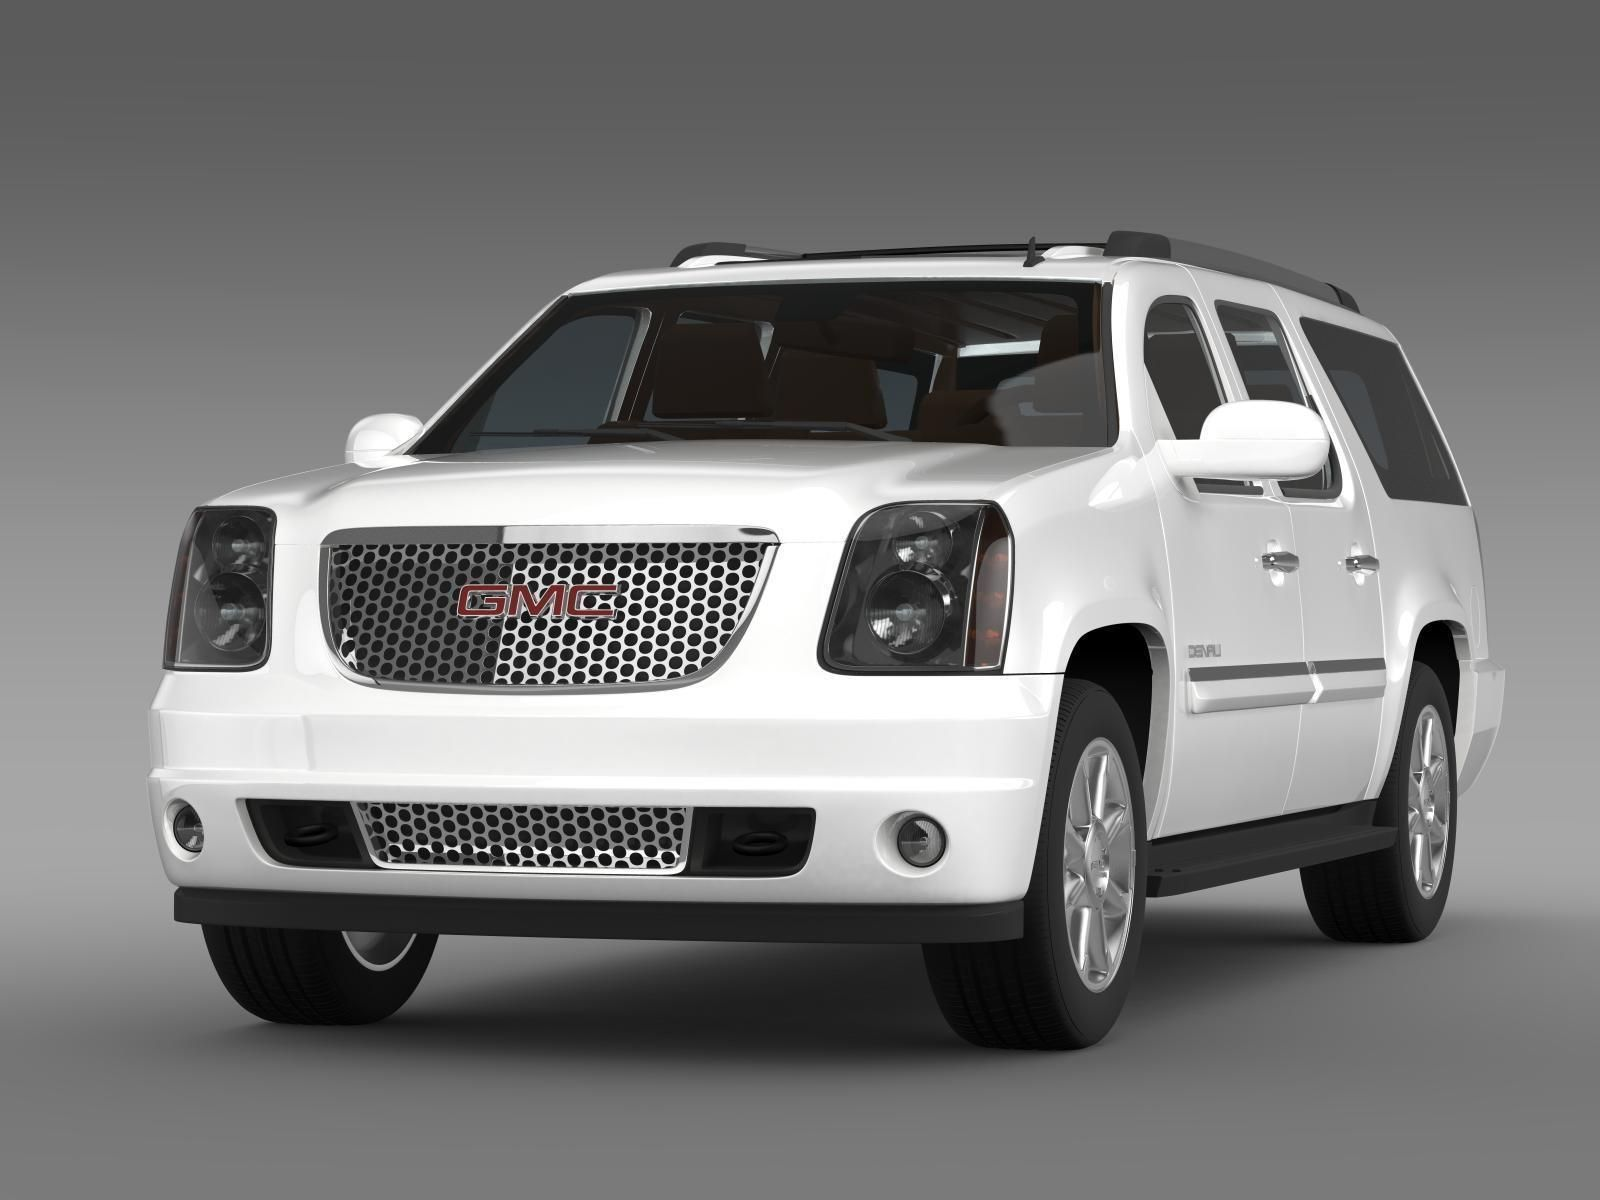 Line Art Xl 2011 : Gmc yukon xl denali flexfuel d model max obj